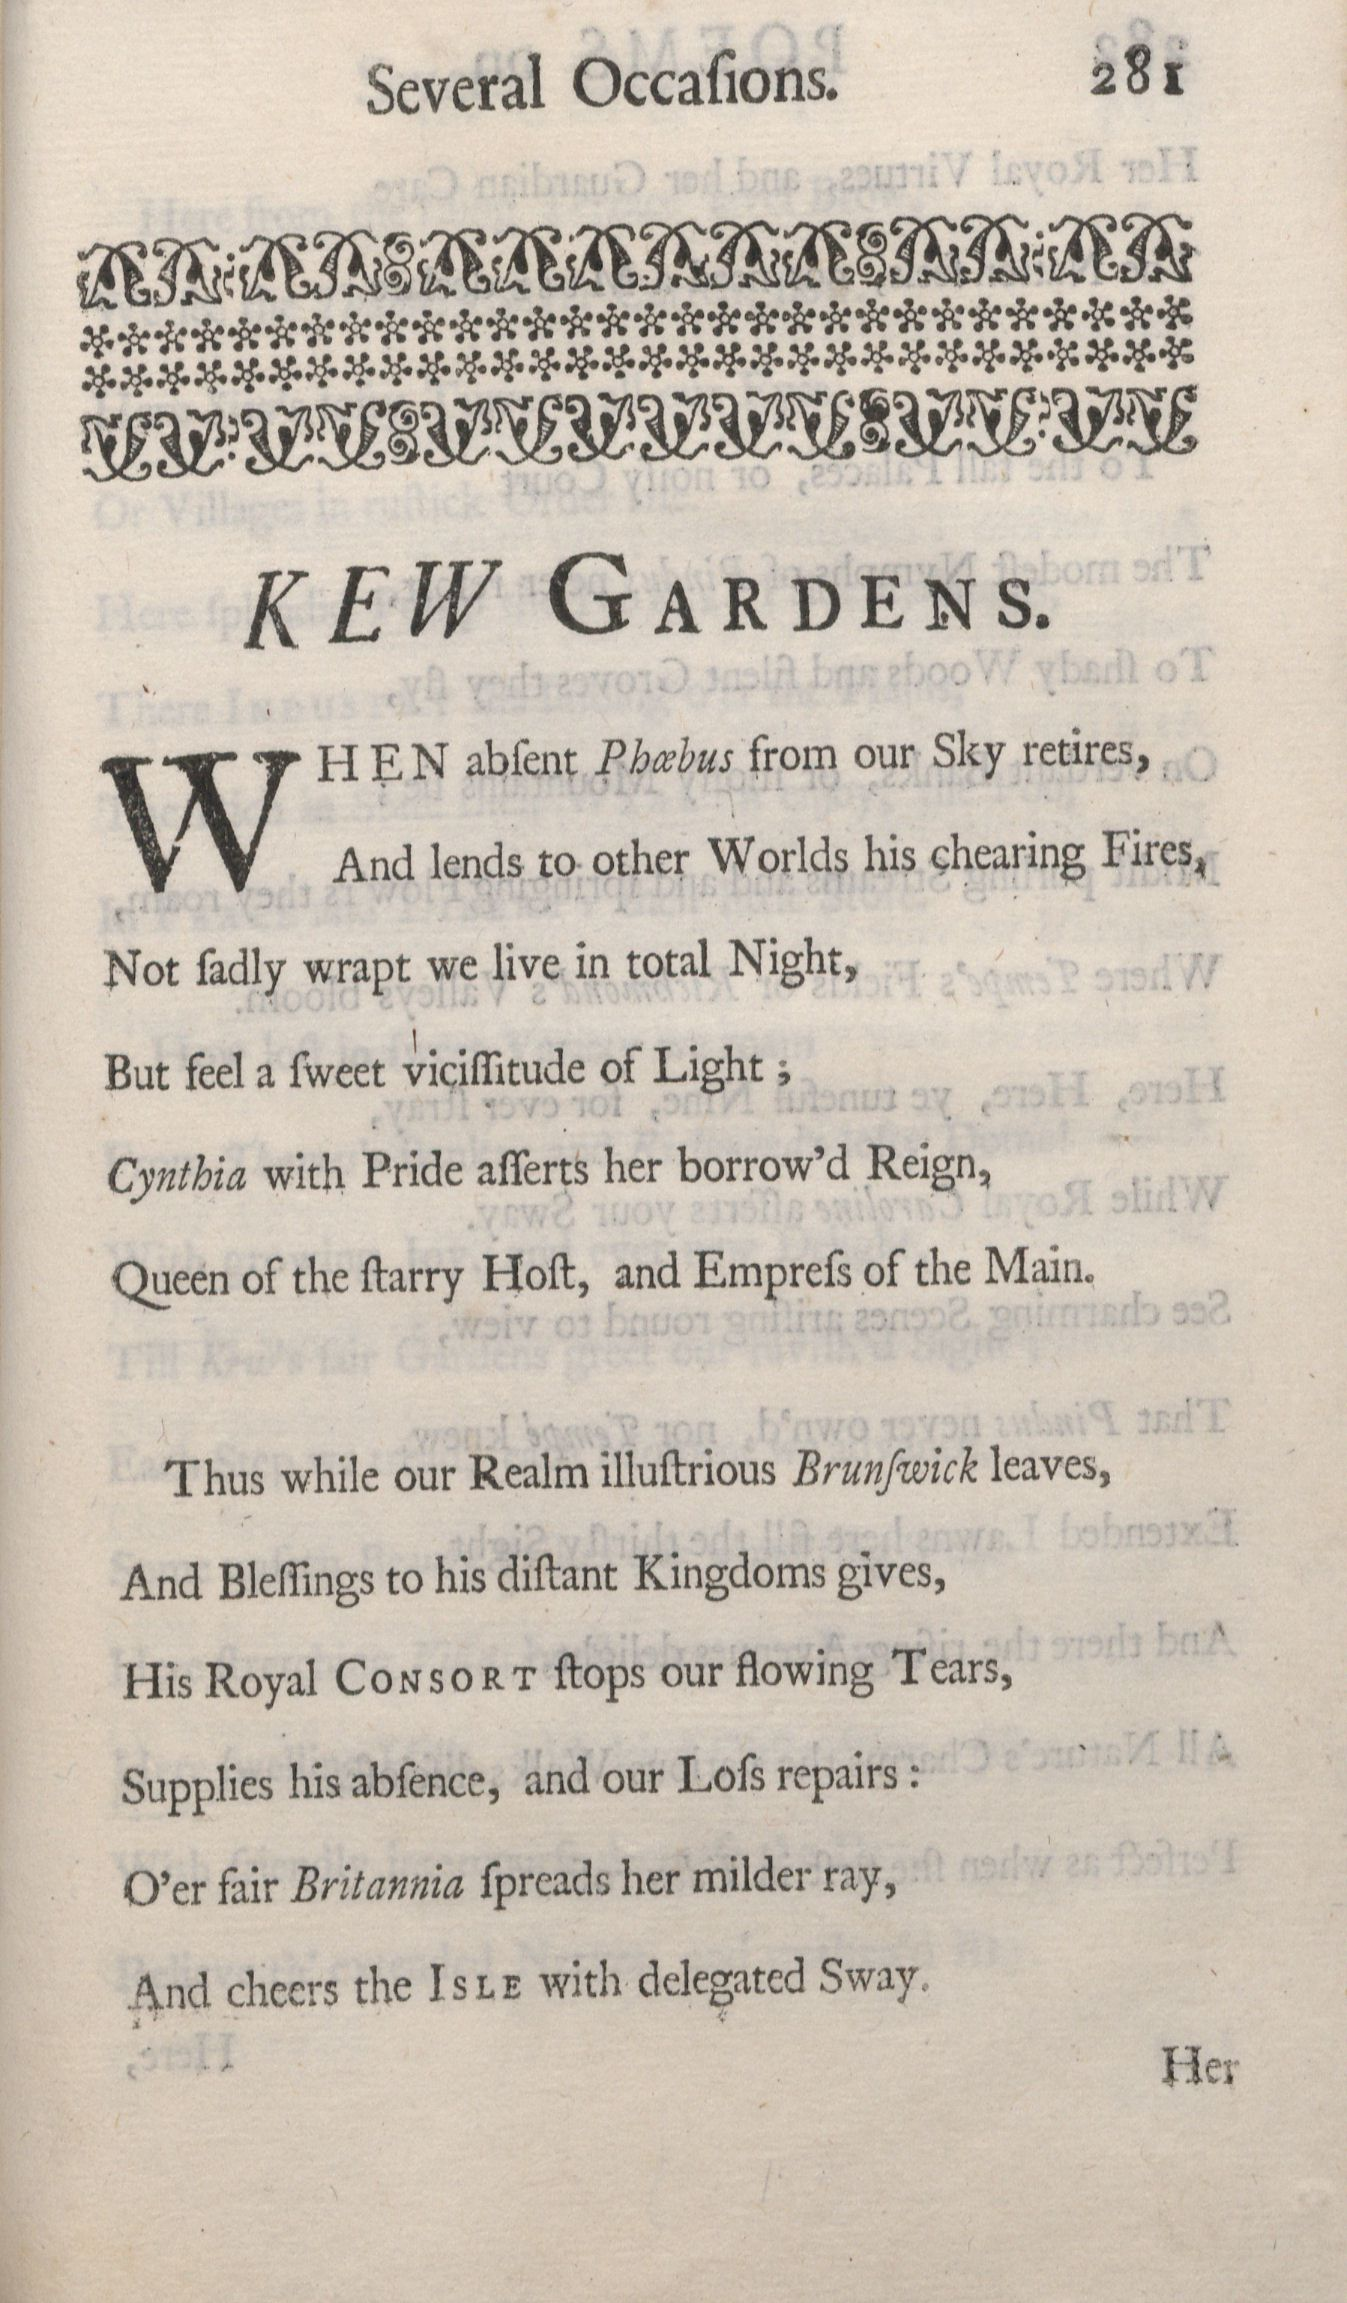 Opening page of 'Kew Gardens' poem by John Whaley